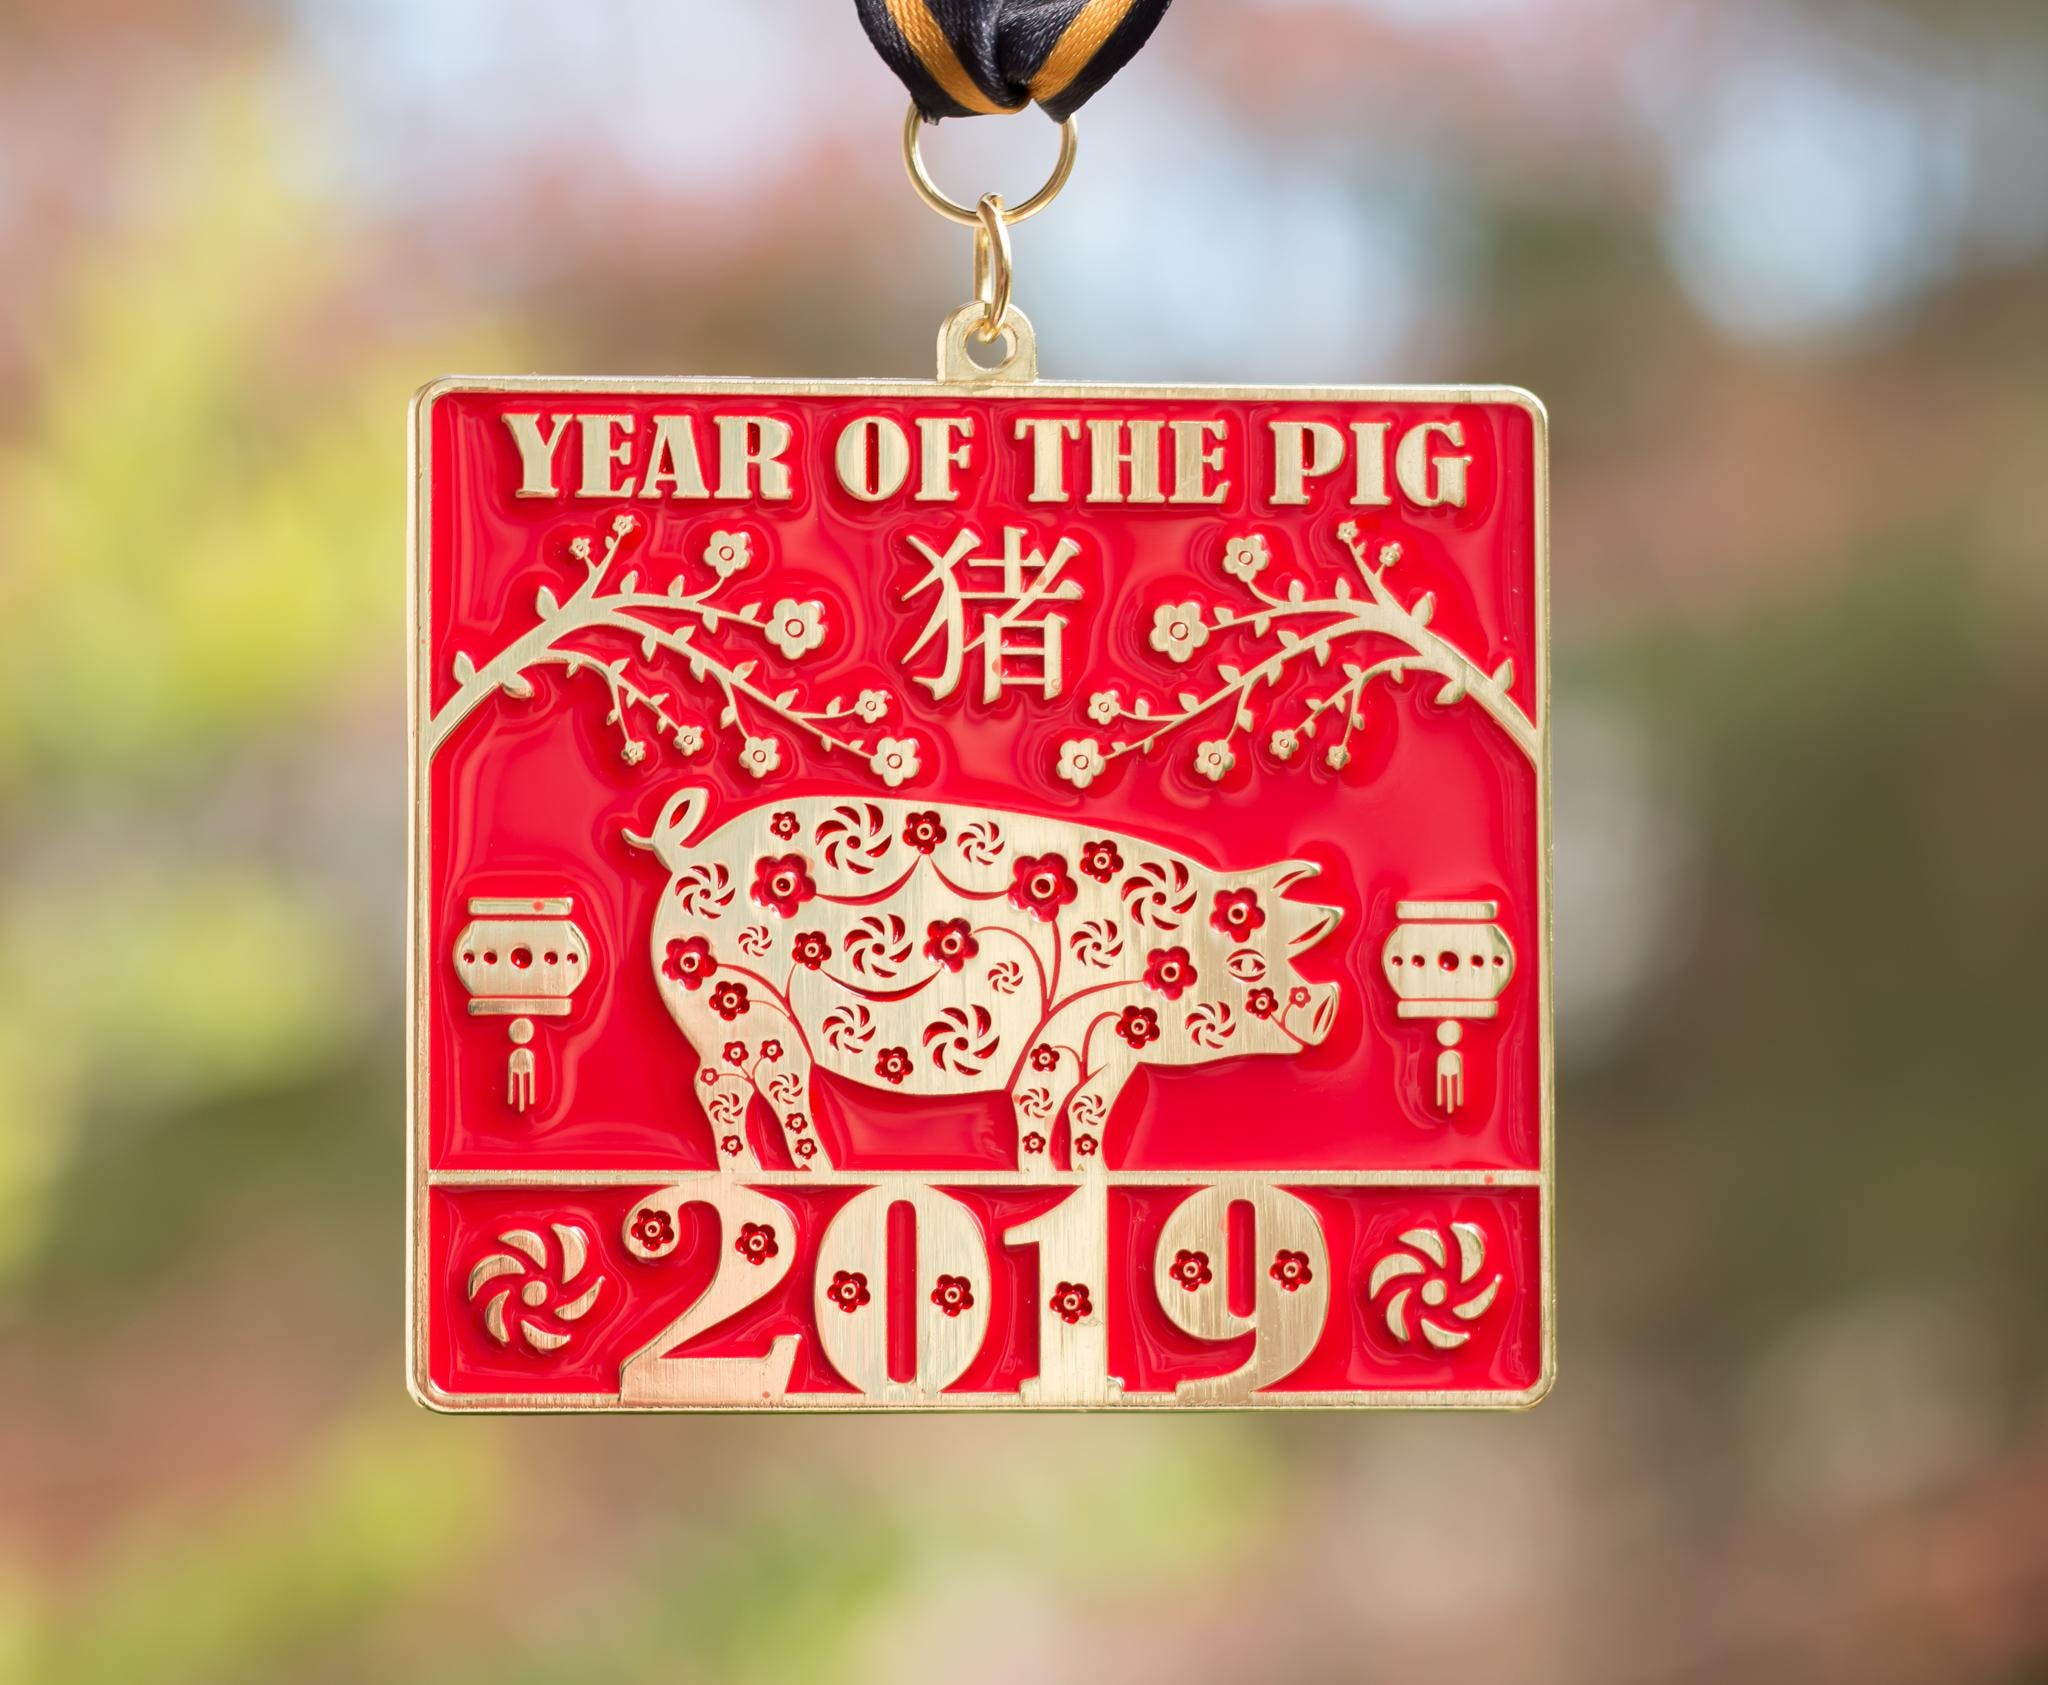 New Year Running and Walking Challenge-Year of the Pig - St. Paul